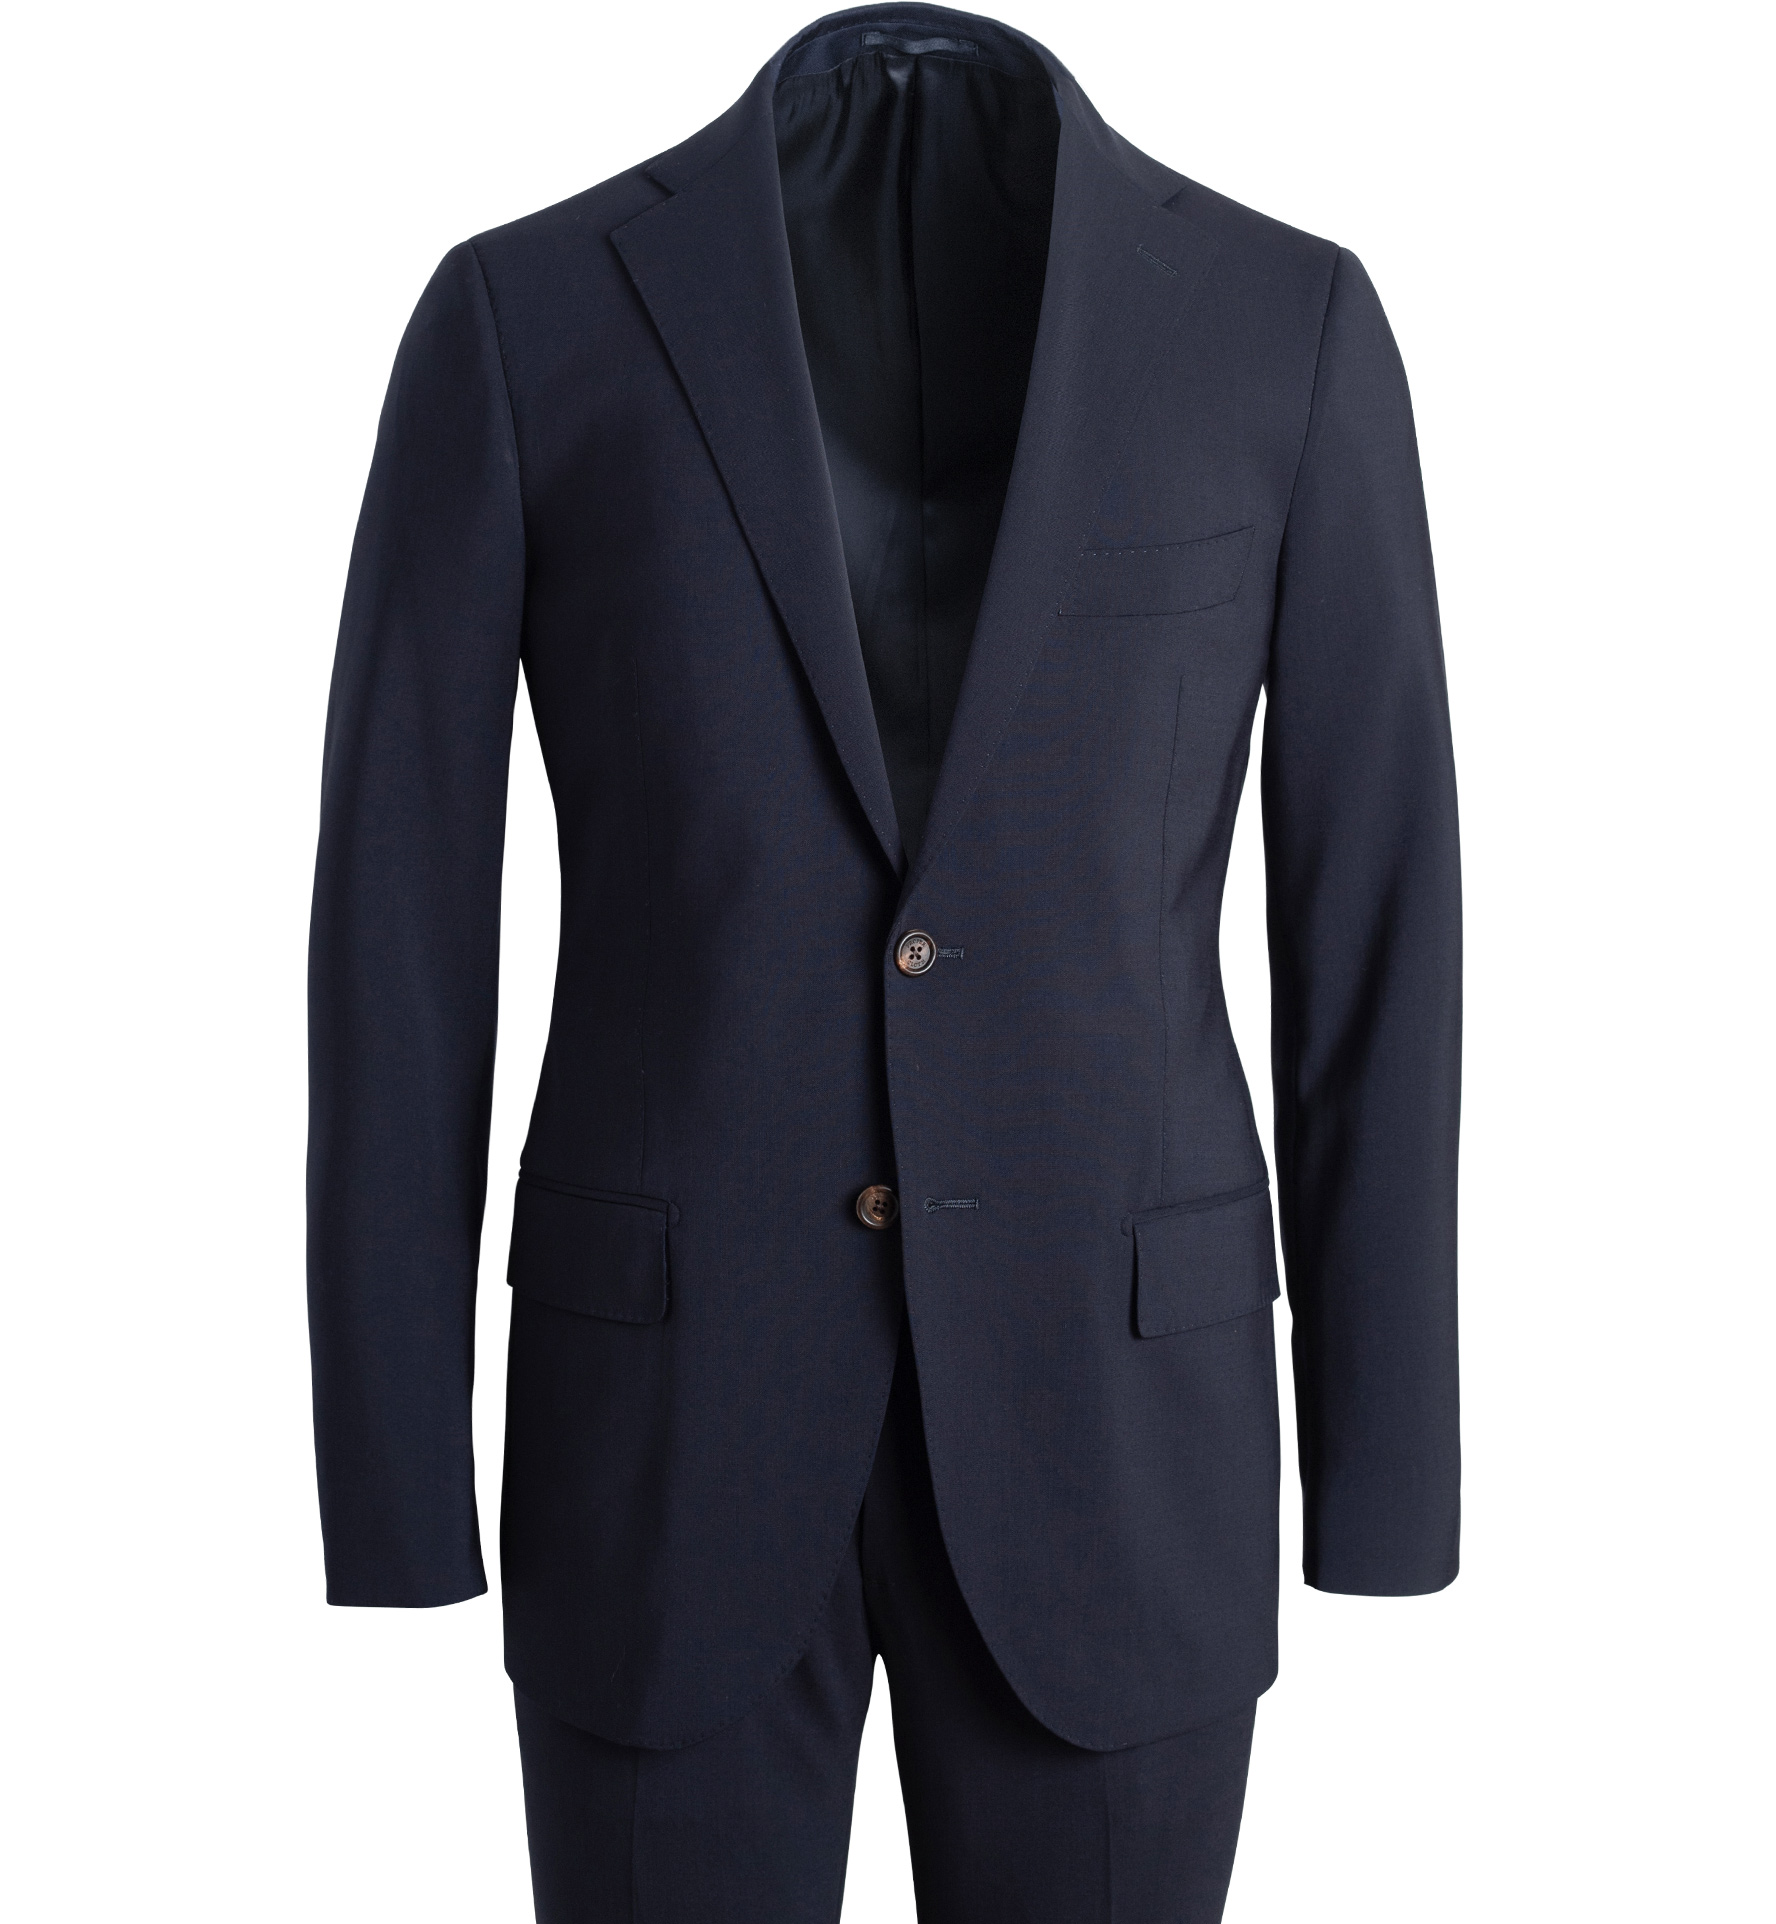 Zoom Image of Allen Navy Stretch Tropical Wool Suit